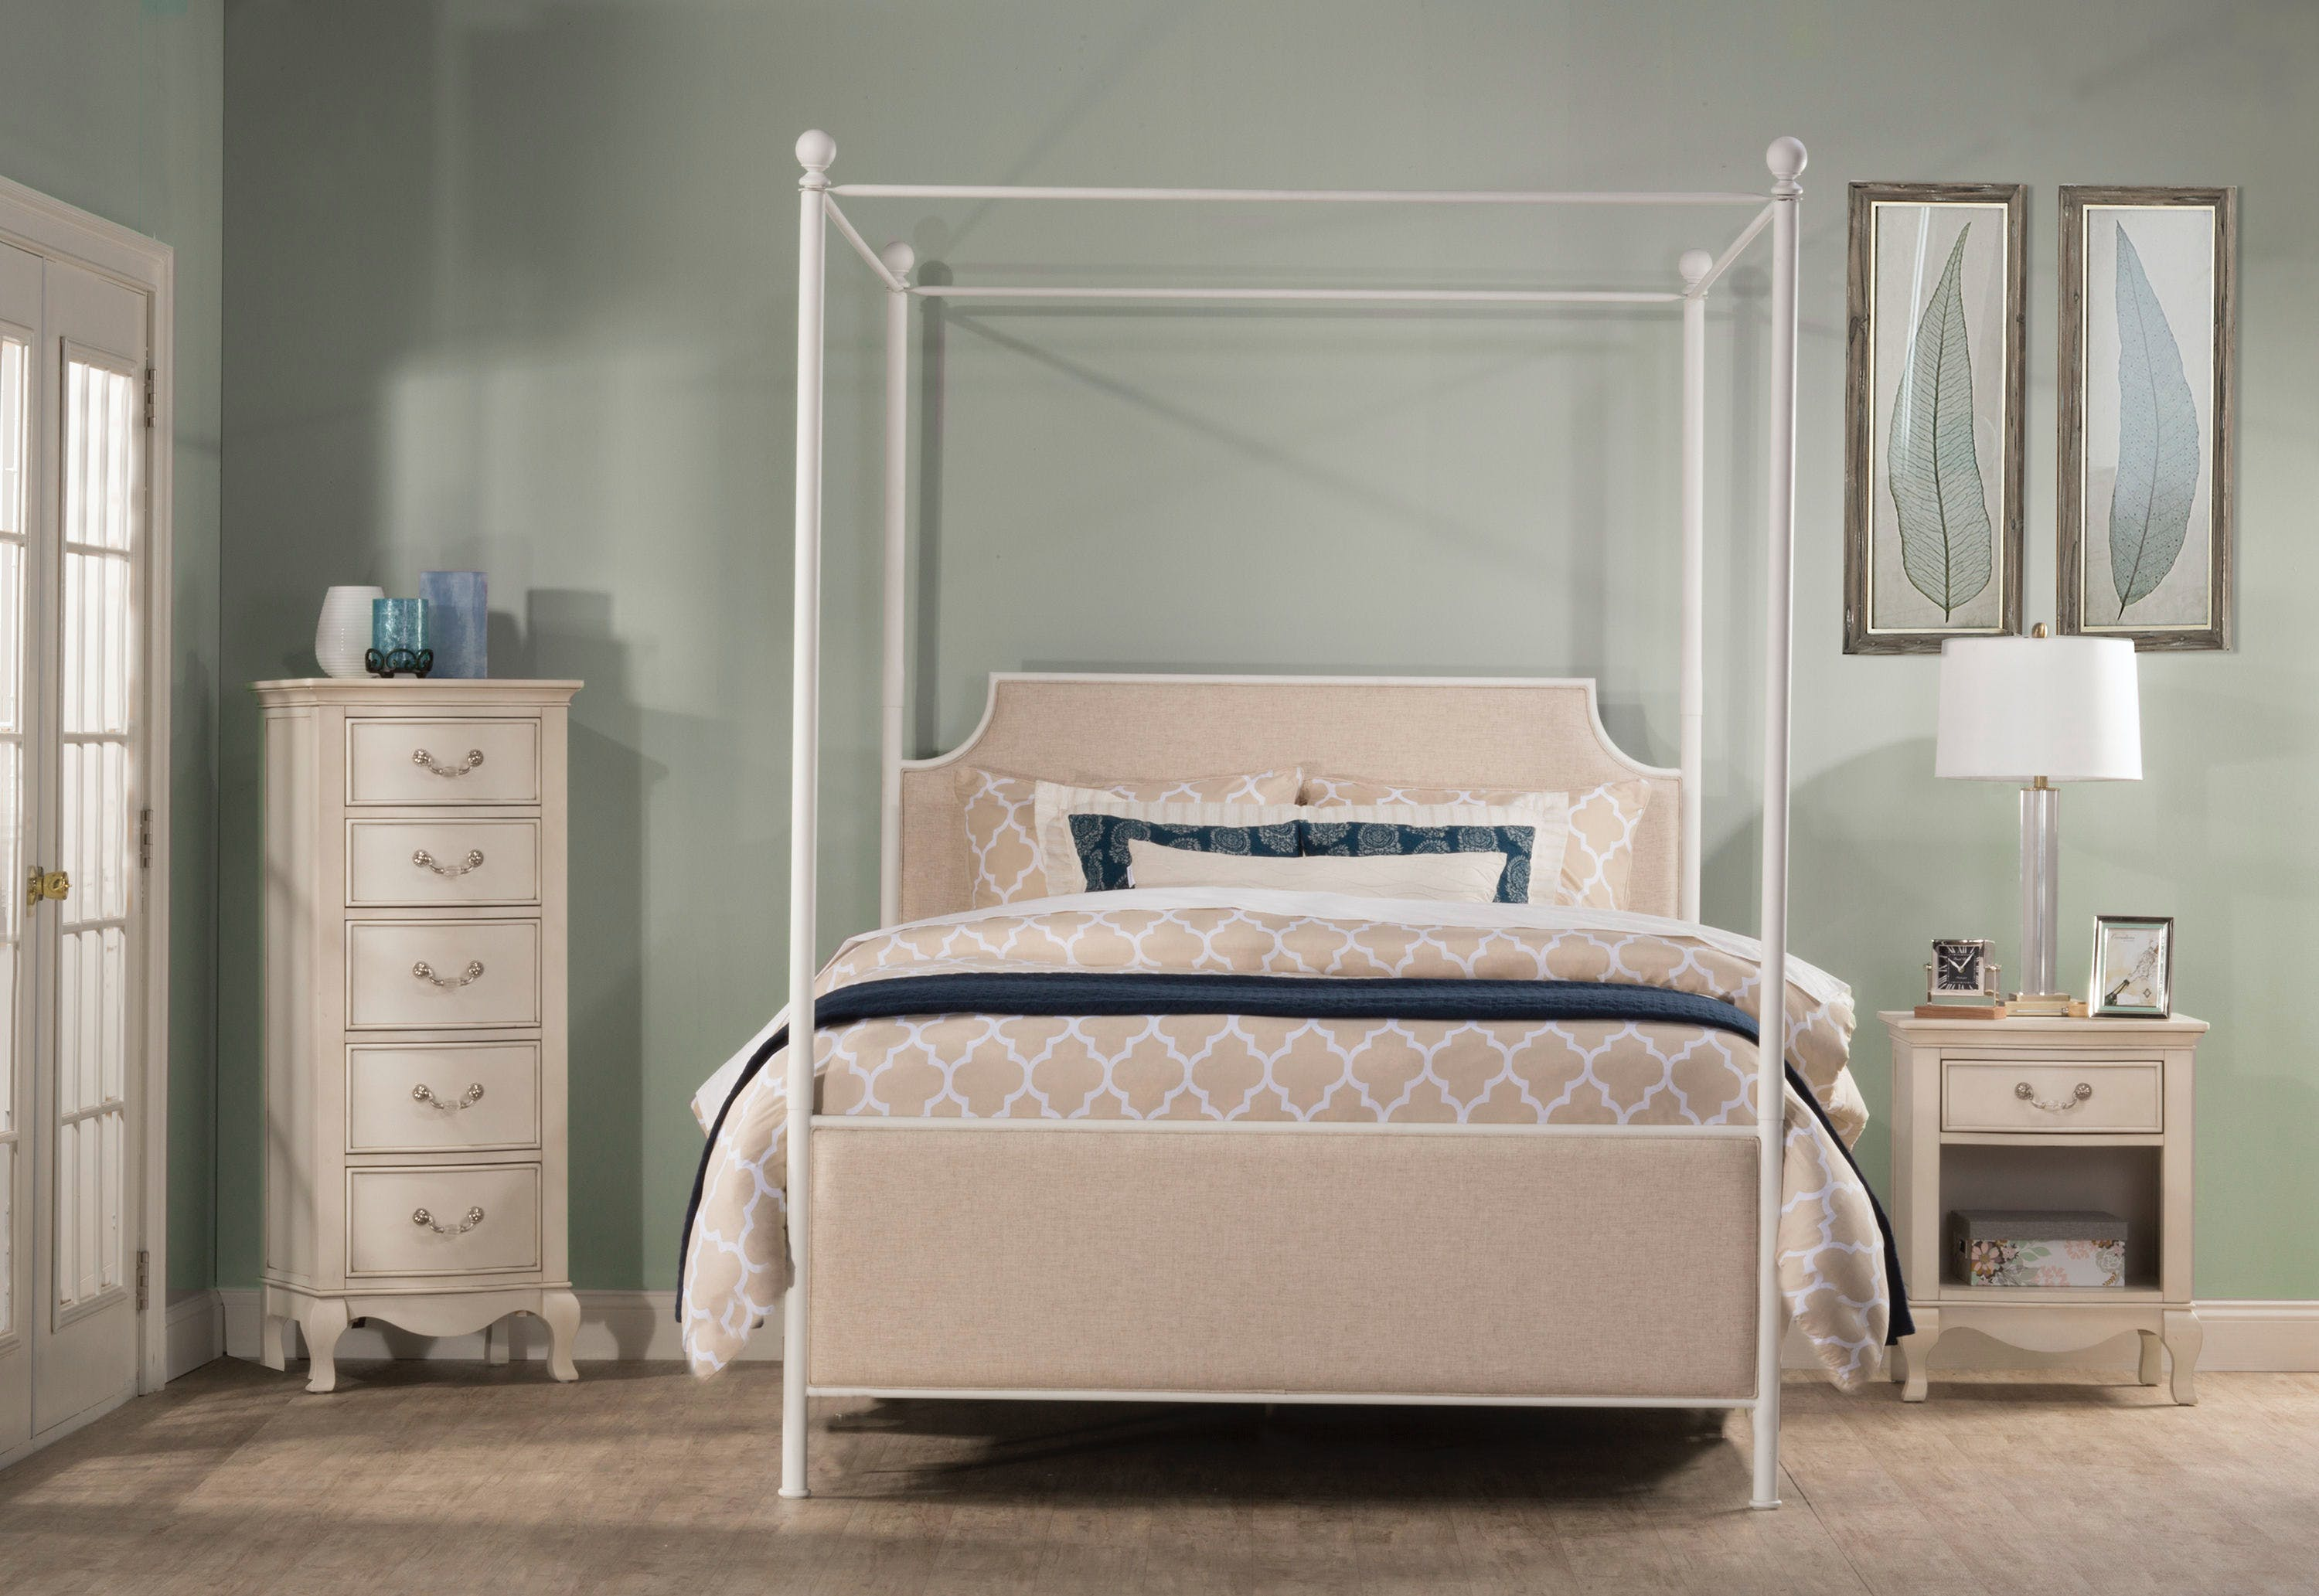 Hillsdale Furniture Bedroom Mcarthur Canopy Bed Set Off White Finish Queen Bed Frame Not